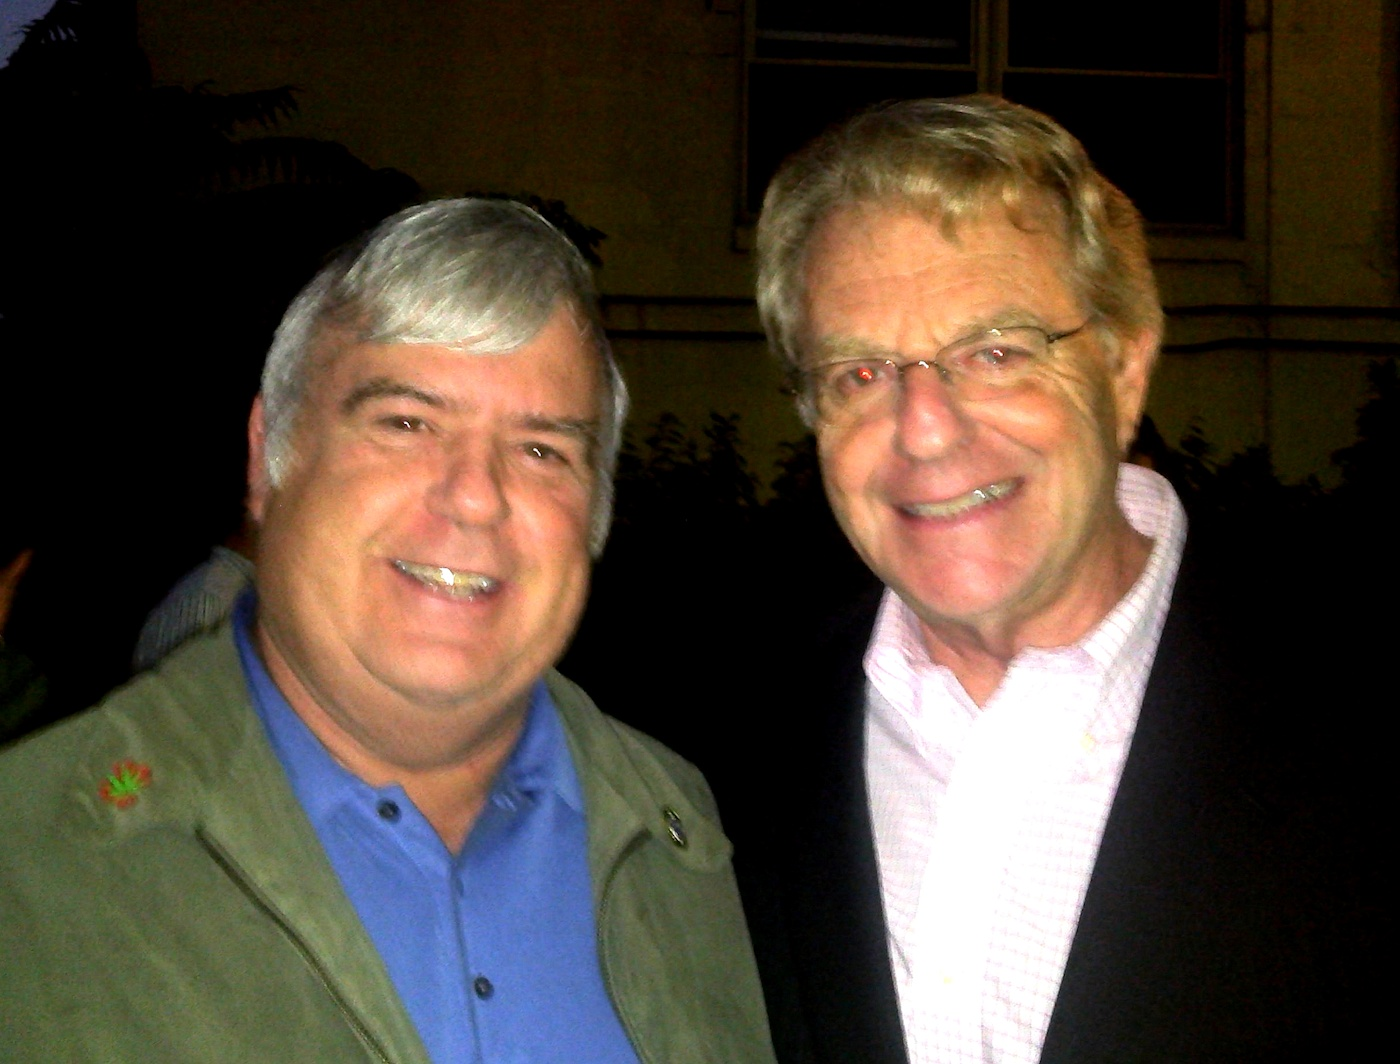 Jerry-_Springer_n_Rob_2011-09-08 20.09.38.jpg